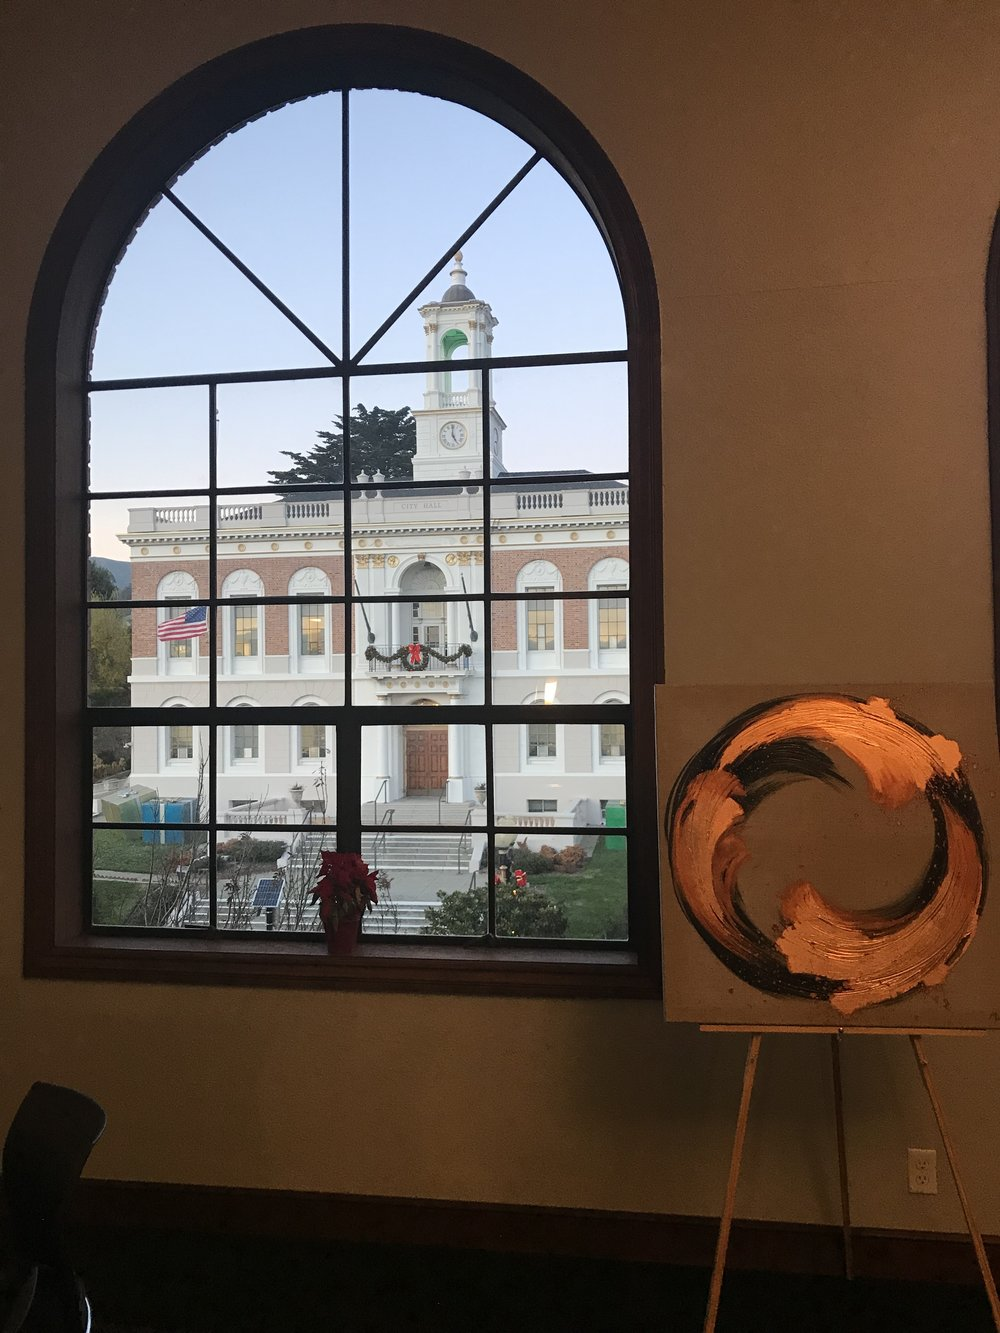 South San Francisco City Hall as seen from the San Francisco Wine School.  Artwork by Melissa Mahoney.